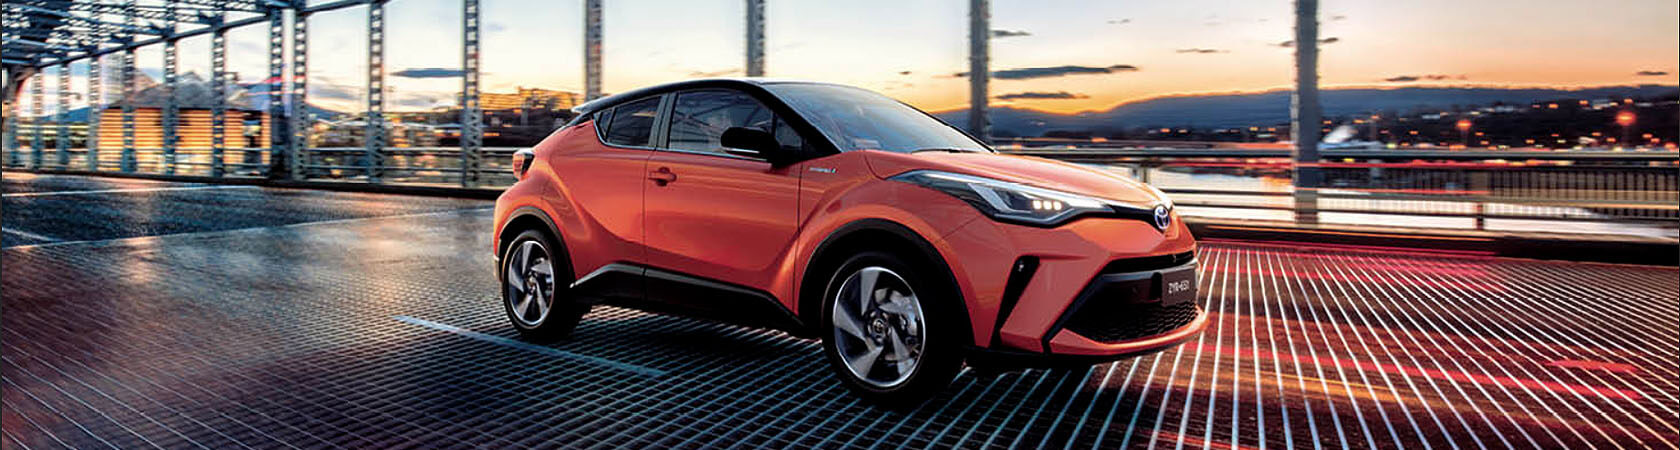 Grand Toyota Clarkson C-HR